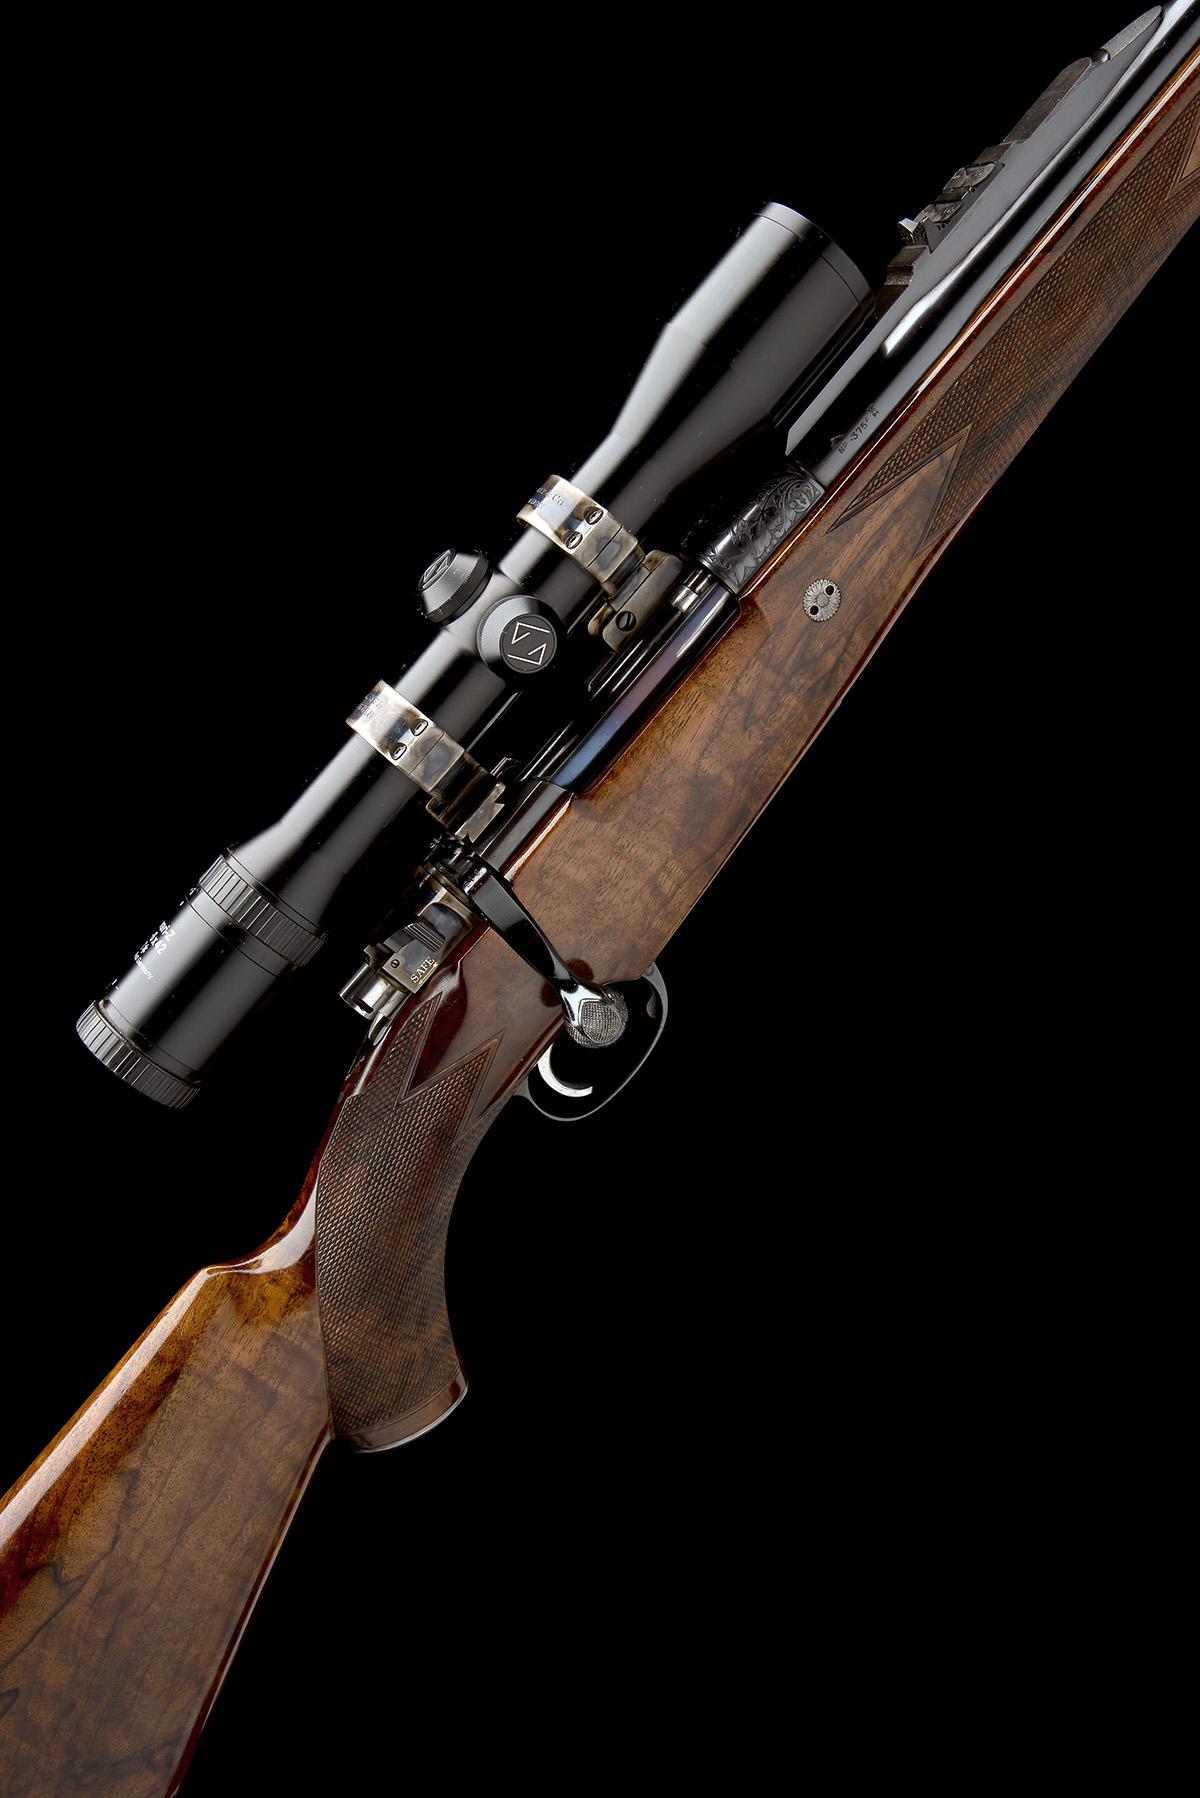 J. RIGBY & CO. A FINE, HUNT-ENGRAVED .375 H&H MAGNUM BOLT-MAGAZINE SPORTING RIFLE, serial no.